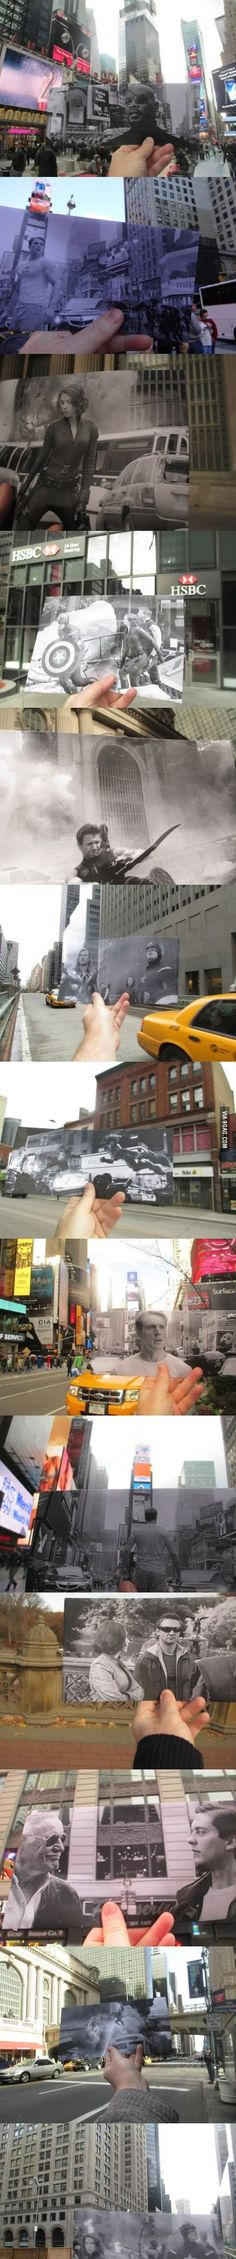 Movie scenes in real life